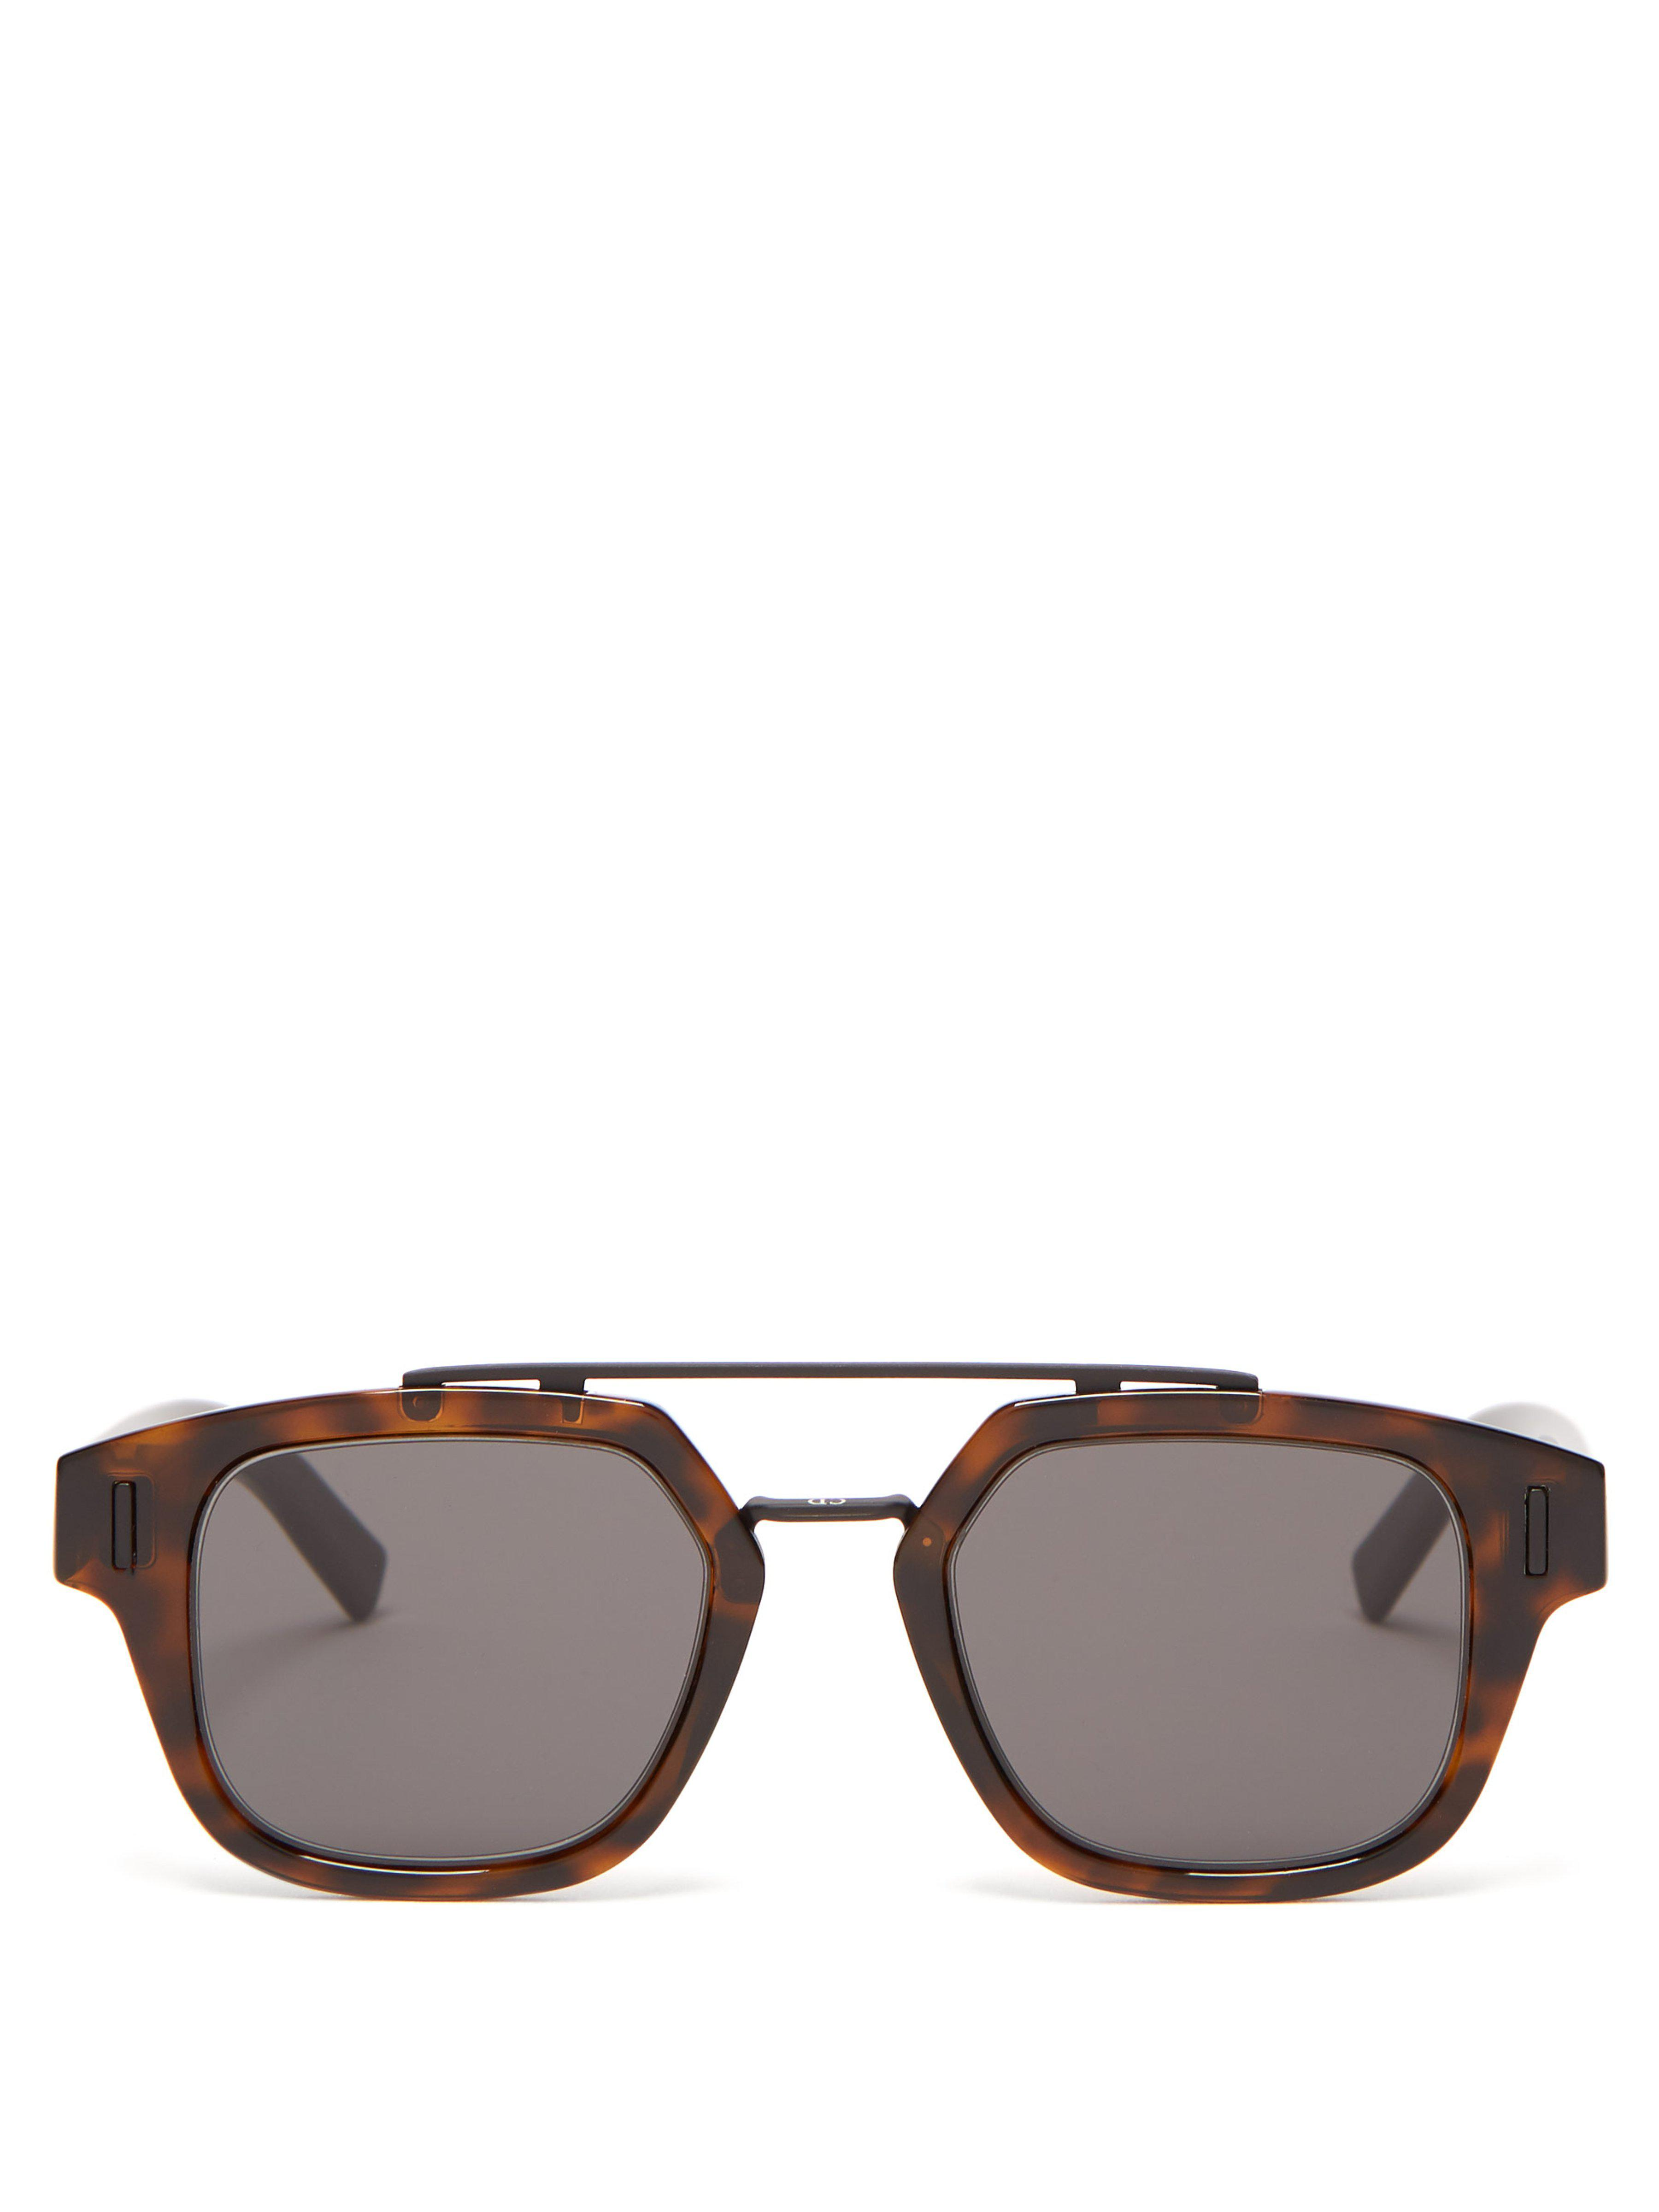 bbcf59f71bc Dior Homme Diorfraction1 Acetate And Metal Sunglasses in Brown for ...